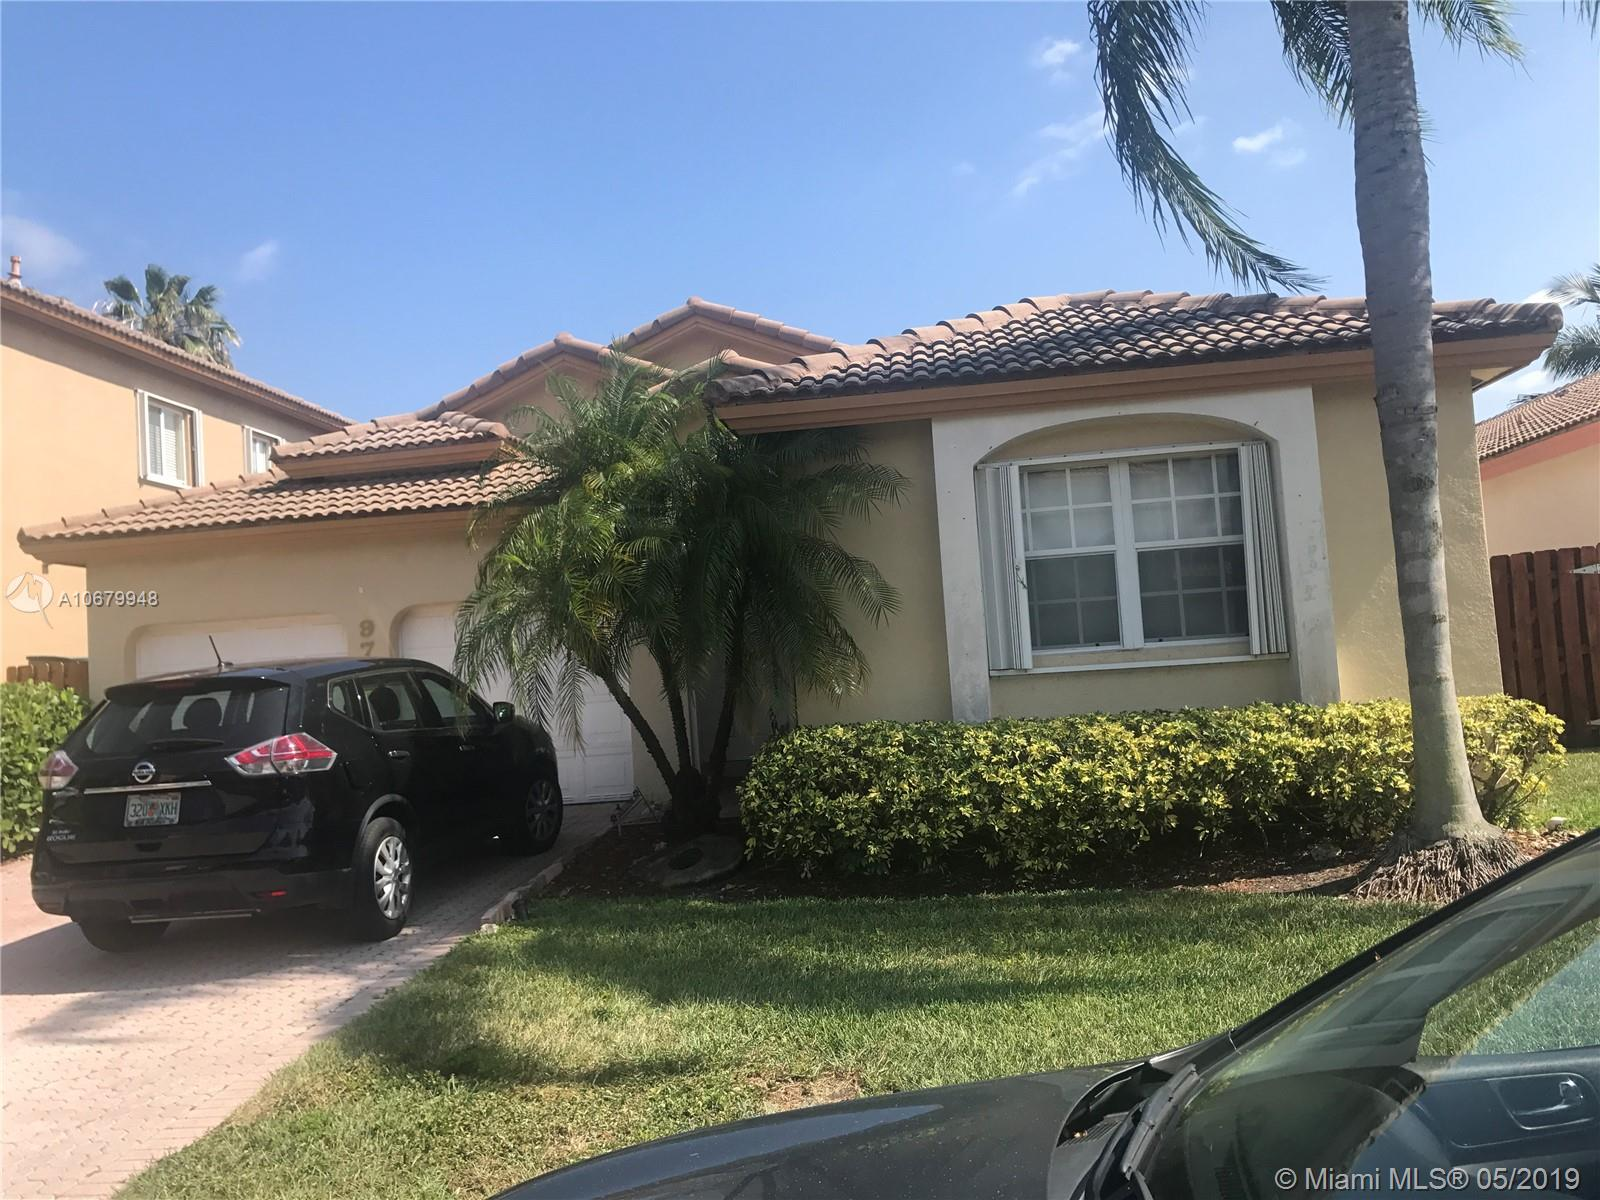 9756 NW 32 ST, Doral, Florida